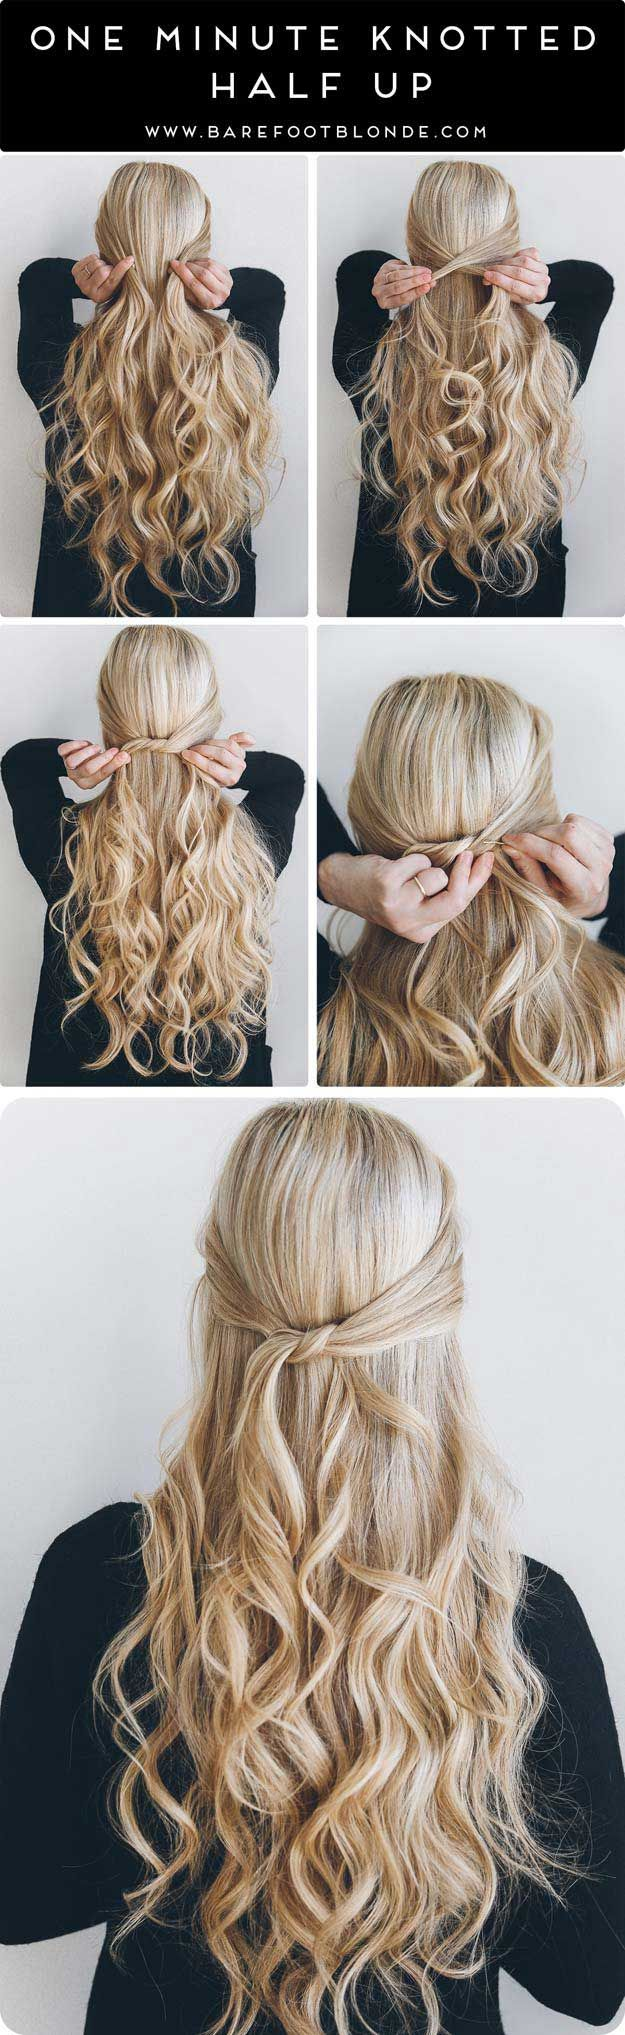 31 Amazing Half Up Half Down Hairstyles For Long Hair The Goddess Down Hairstyles For Long Hair Long Hair Styles Medium Length Hair Styles